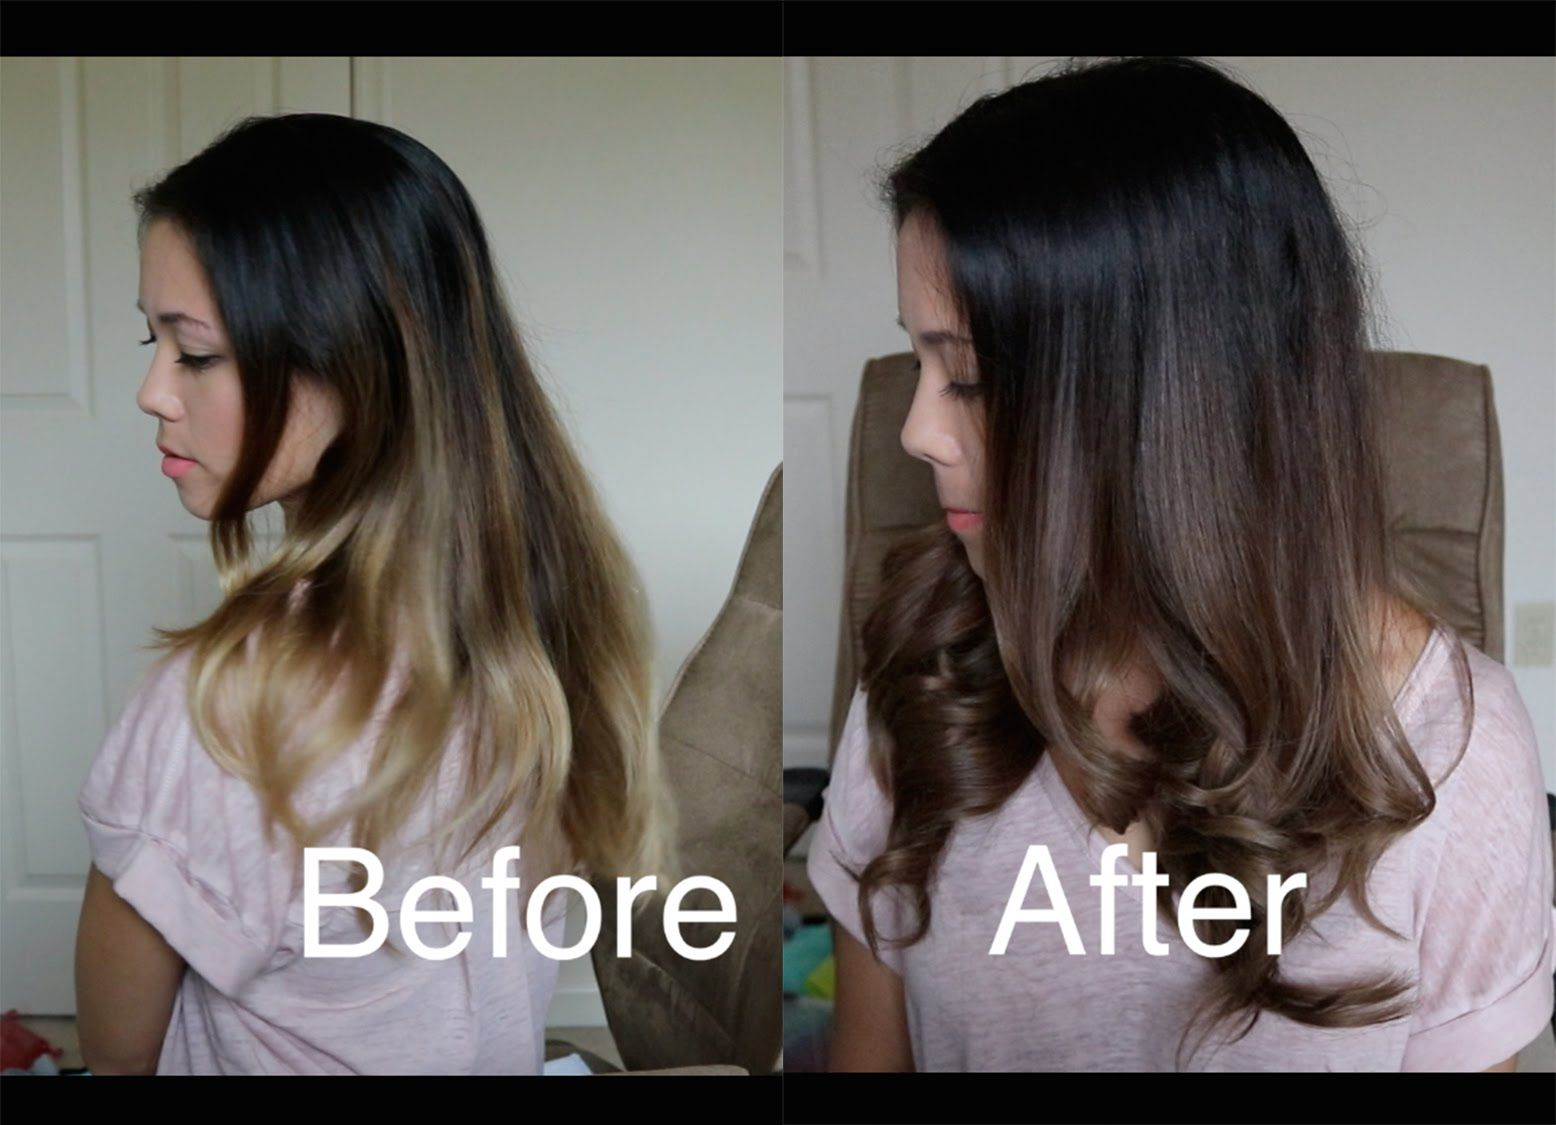 How To Darken An Ombre With Wella Demi Permanent Hair Dye Demi Hair Color Permanent Hair Dye Permanent Hair Color